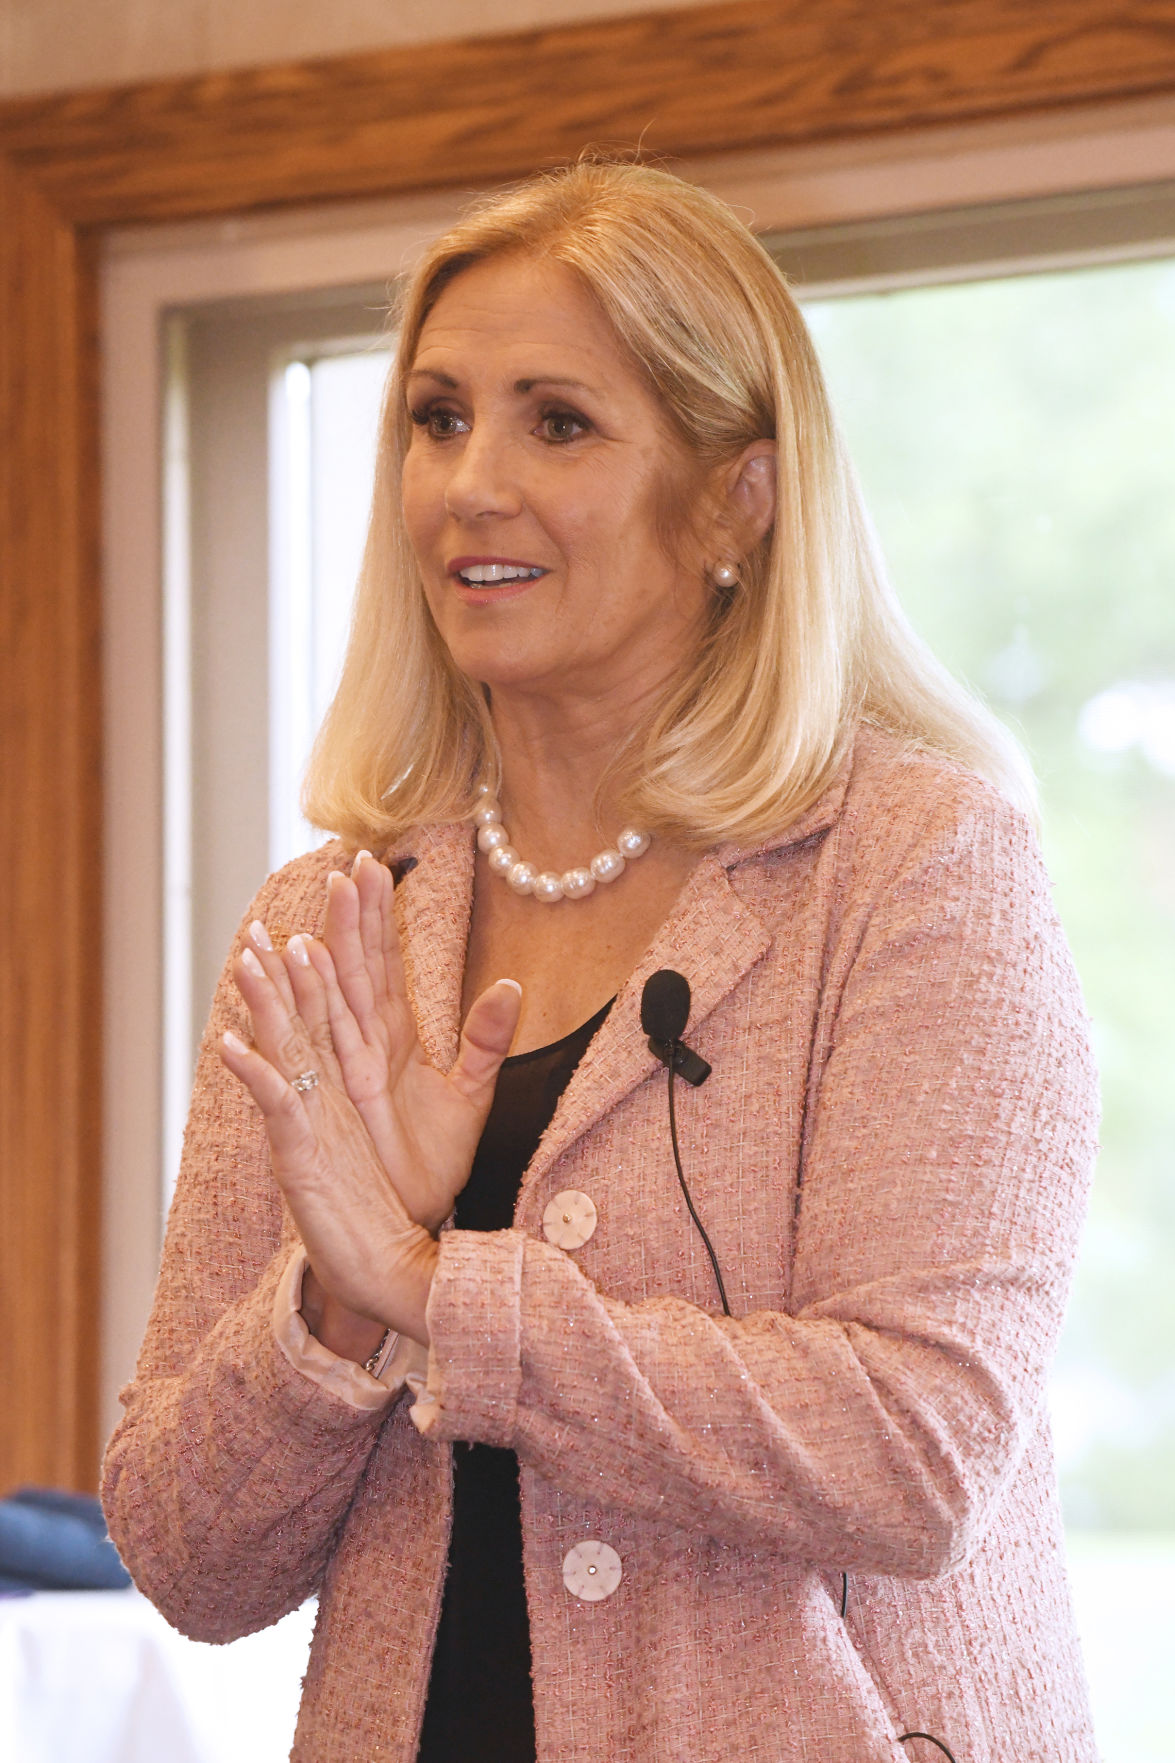 Lifestyles of Kankakee County recognize Women in Business